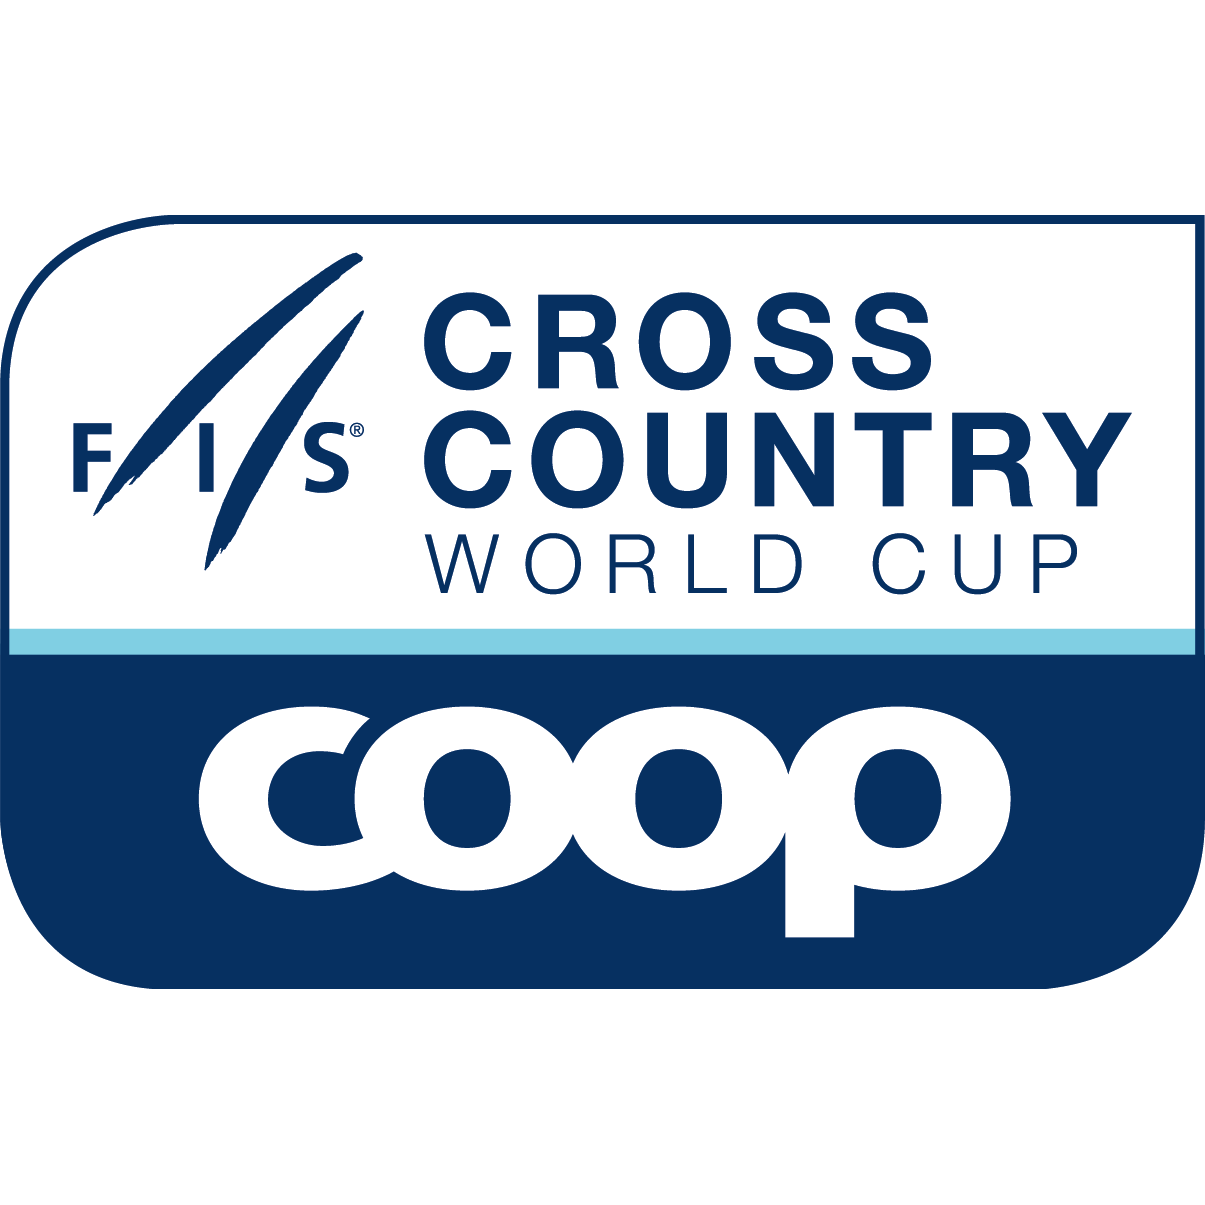 2014 FIS Cross Country World Cup - Tour de Ski